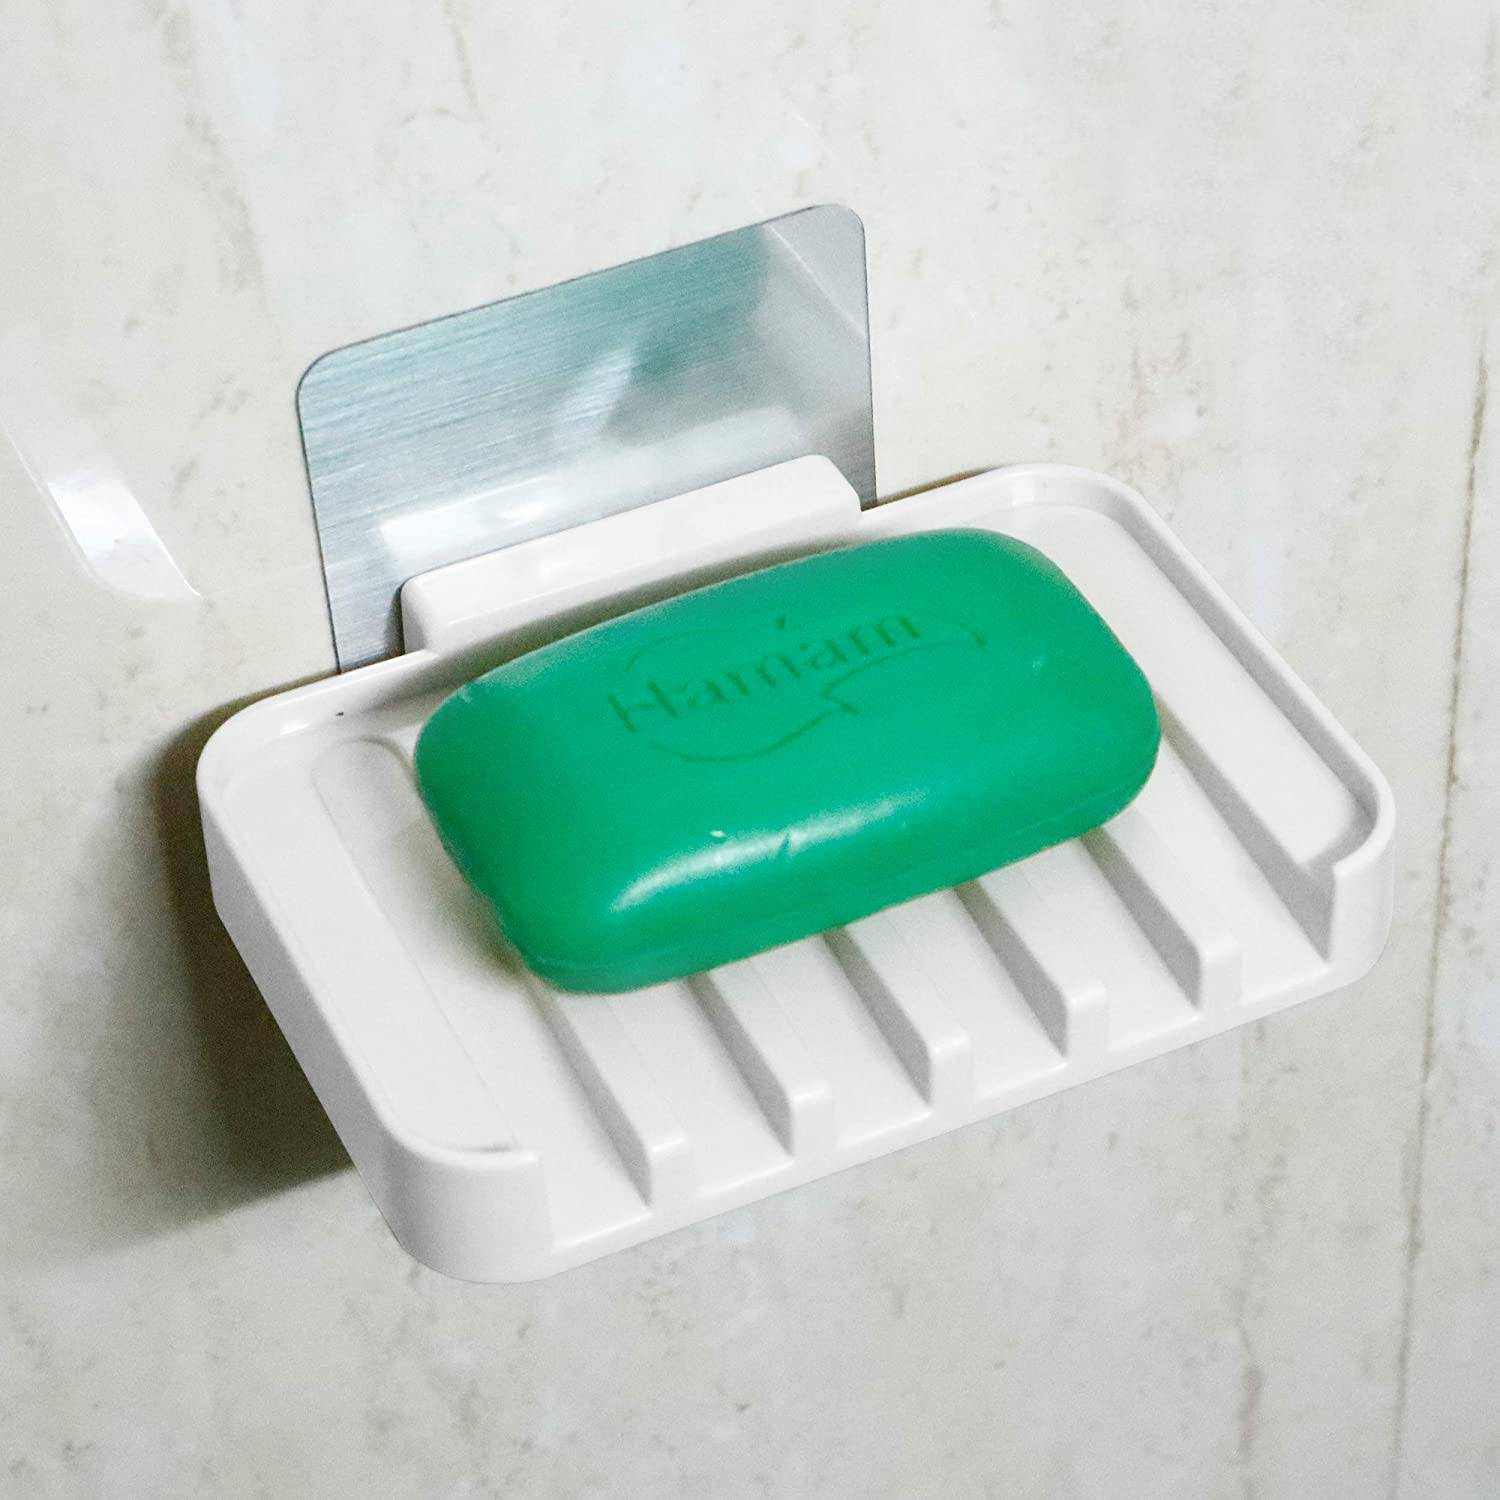 AND009365. Soap Stand for Bathroom Wall